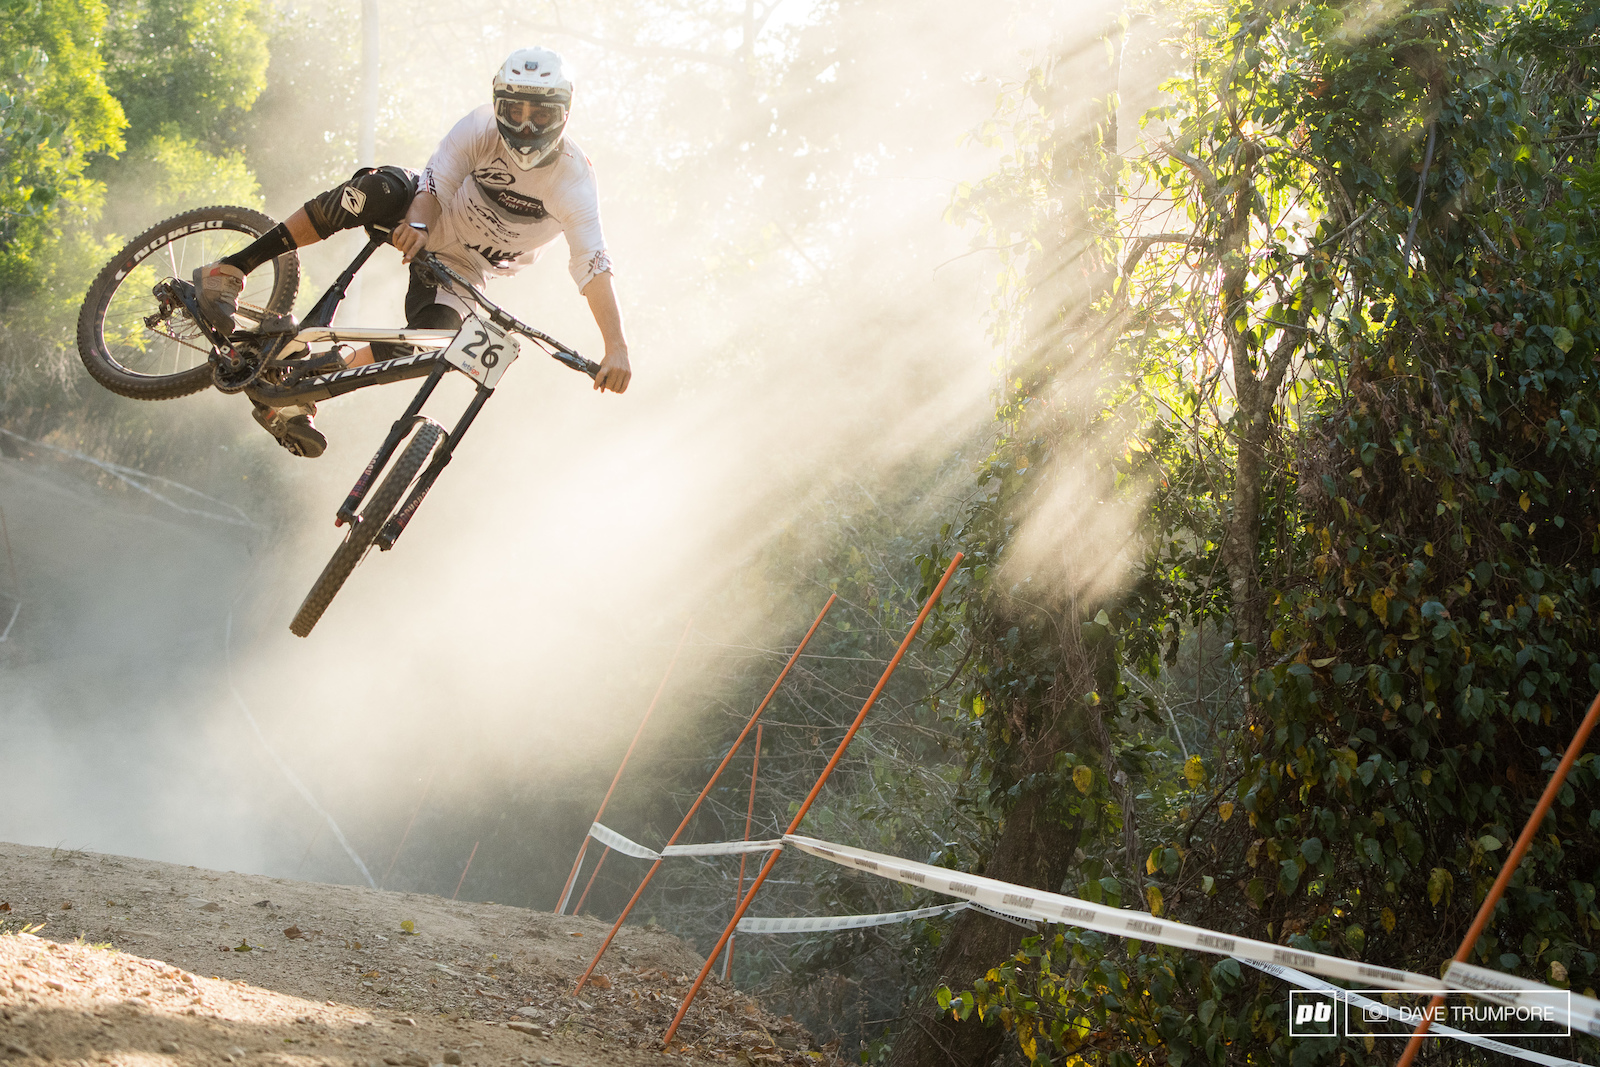 You can always count on Sam Blenkinsop to bring a little extra style when the good light is popping.